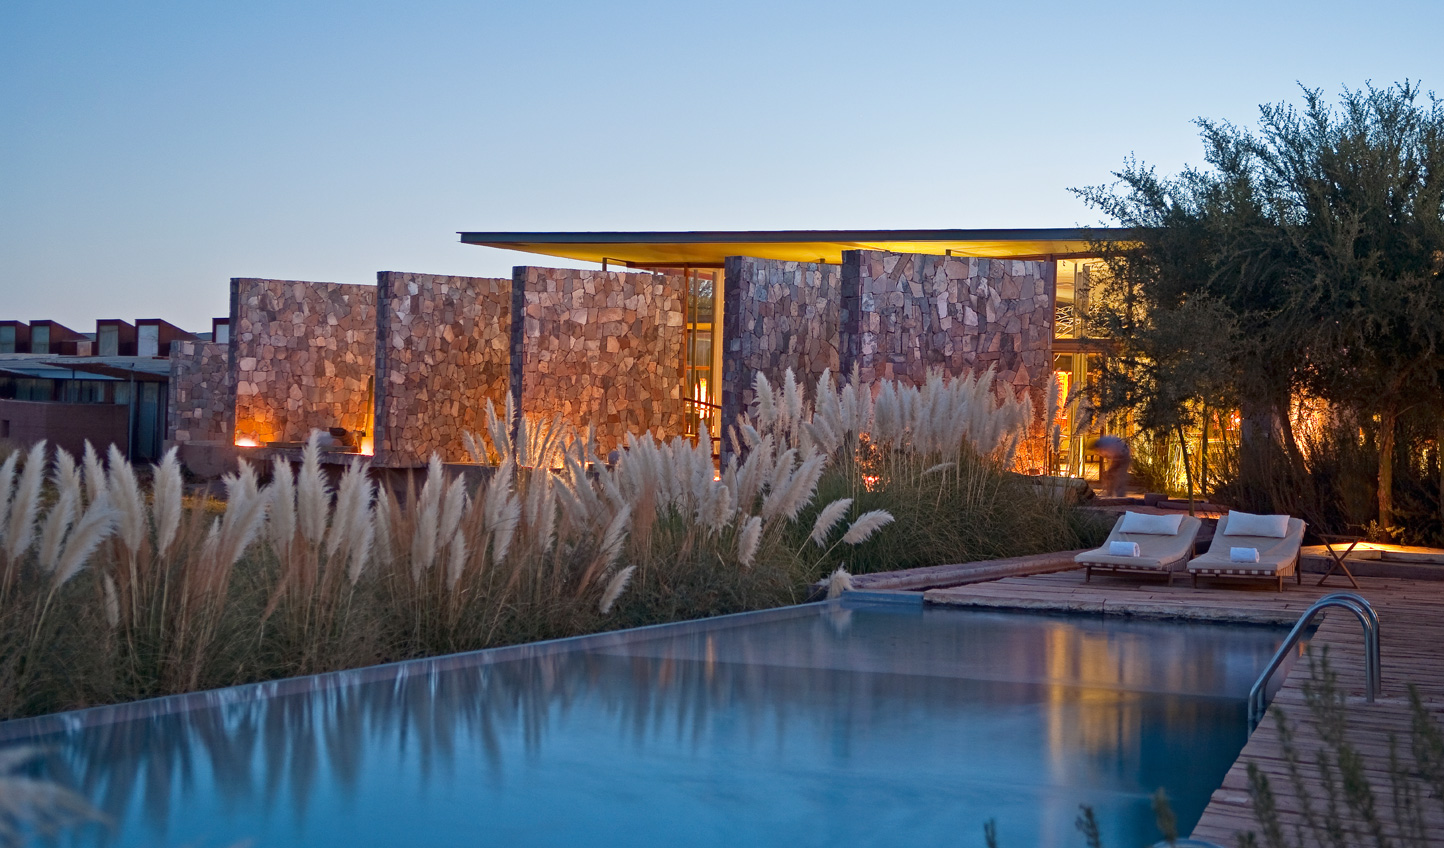 Discover a stylish oasis in the heart of the Atacama desert